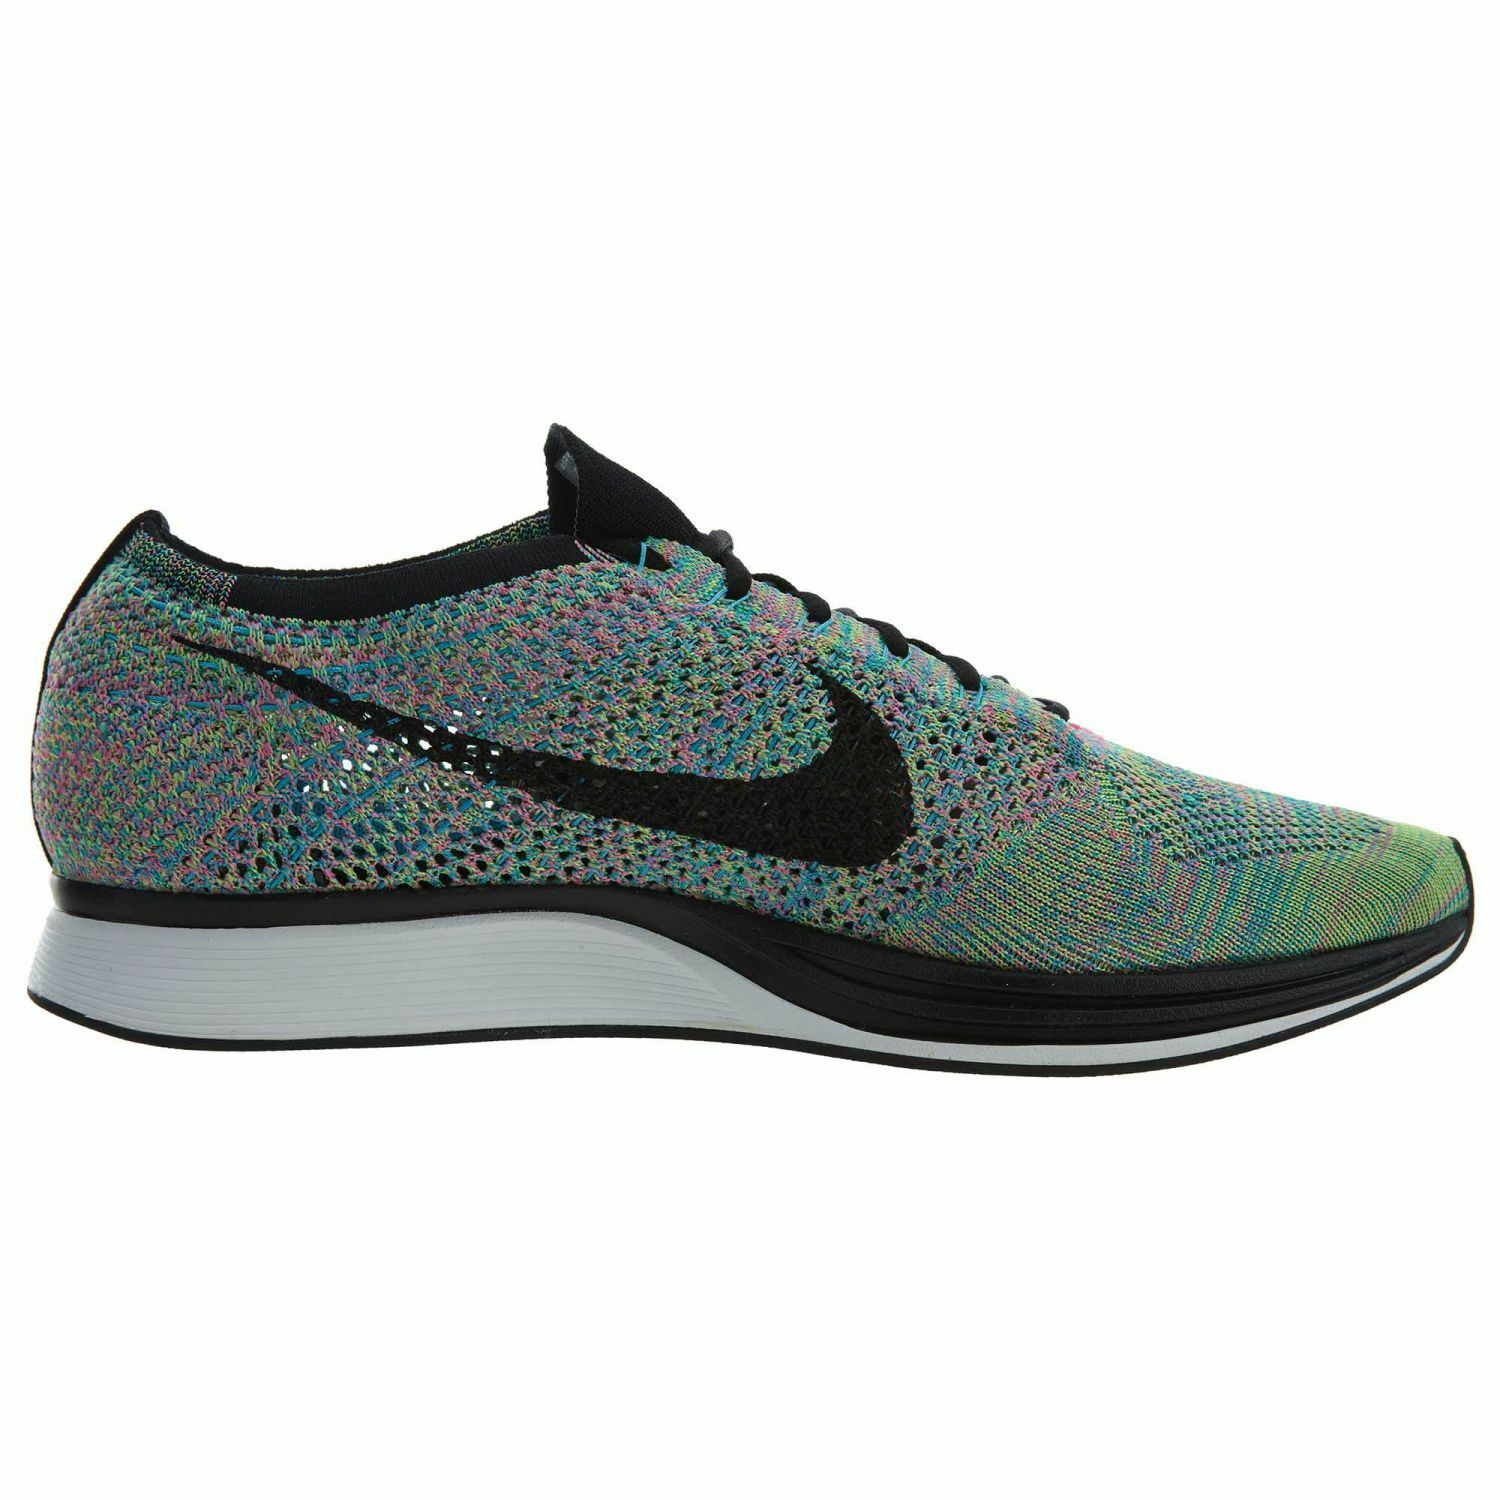 Nike Flyknit Racer Mens 526628-304 Rainbow Multi Color Running Shoes Comfortable Wild casual shoes